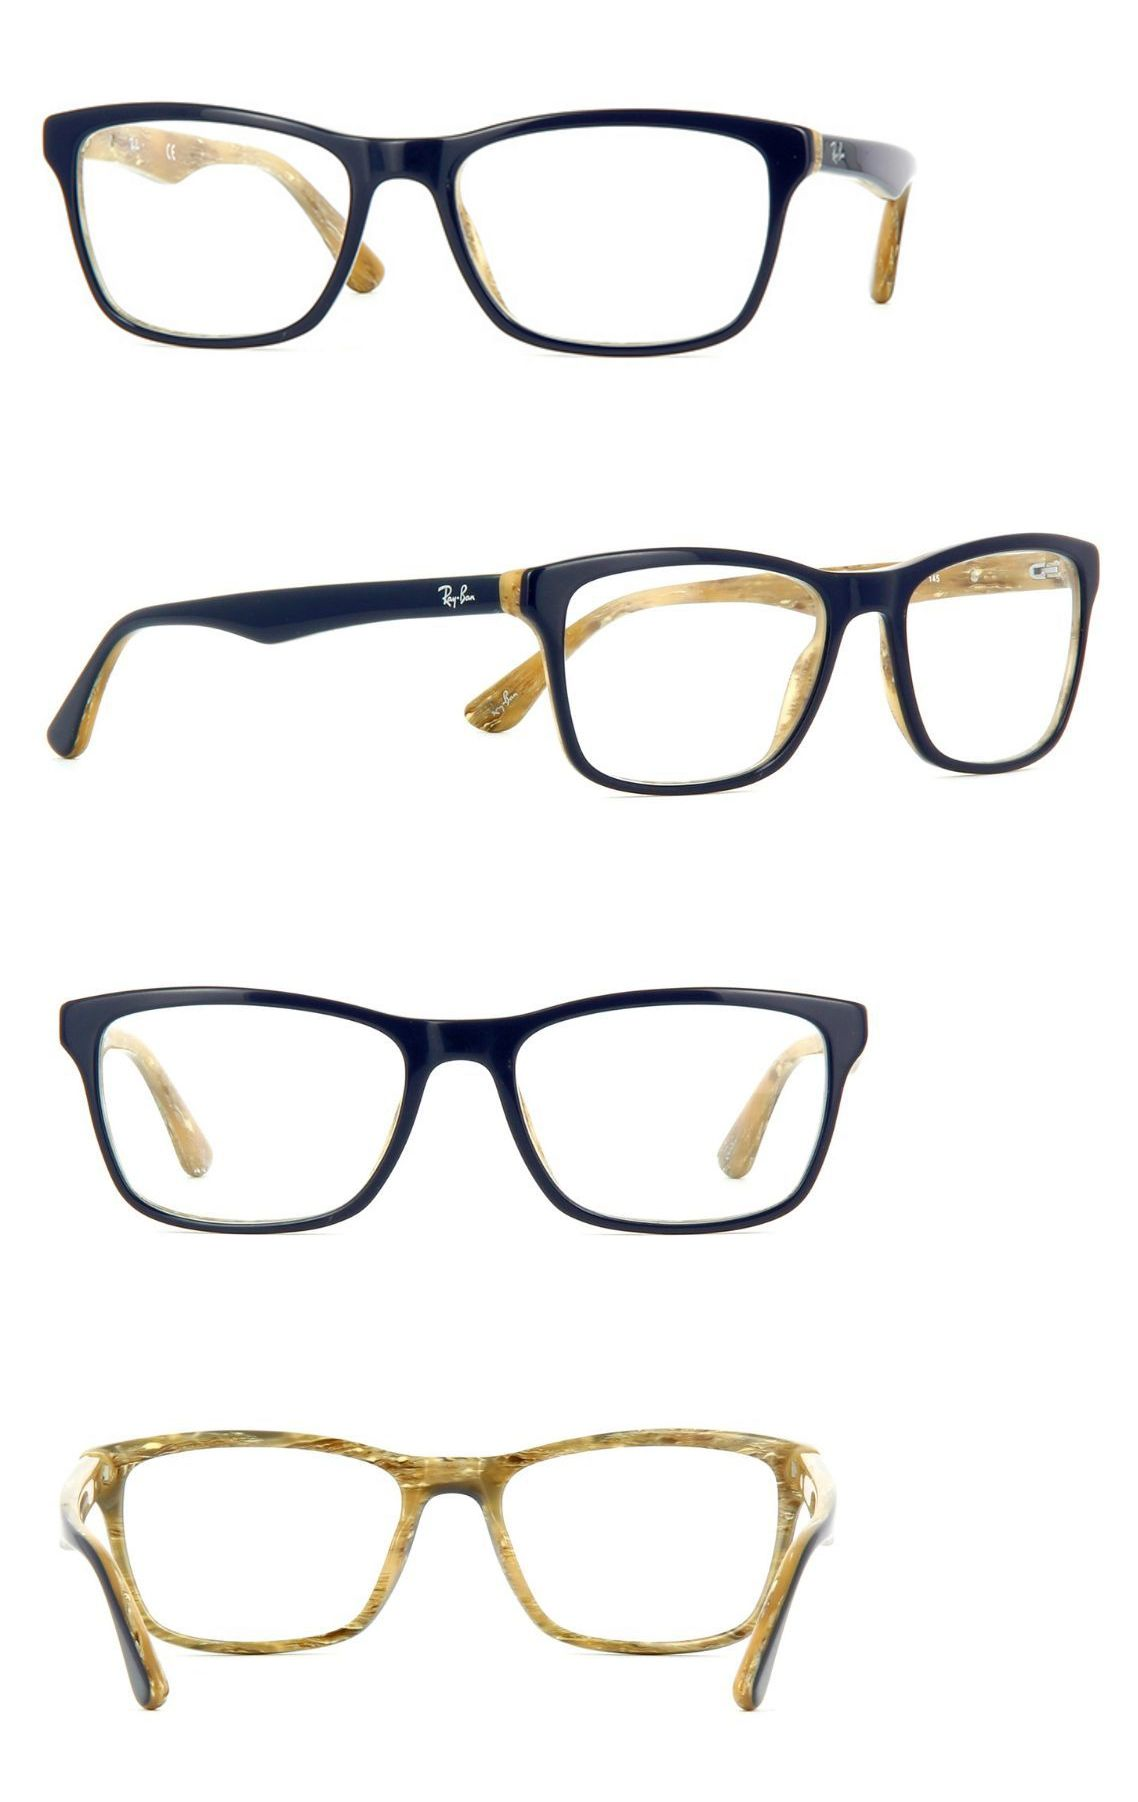 eyeglass frames new authentic ray ban frames rb5279 5131 blue with beige interior 55 - Ebay Eyeglass Frames